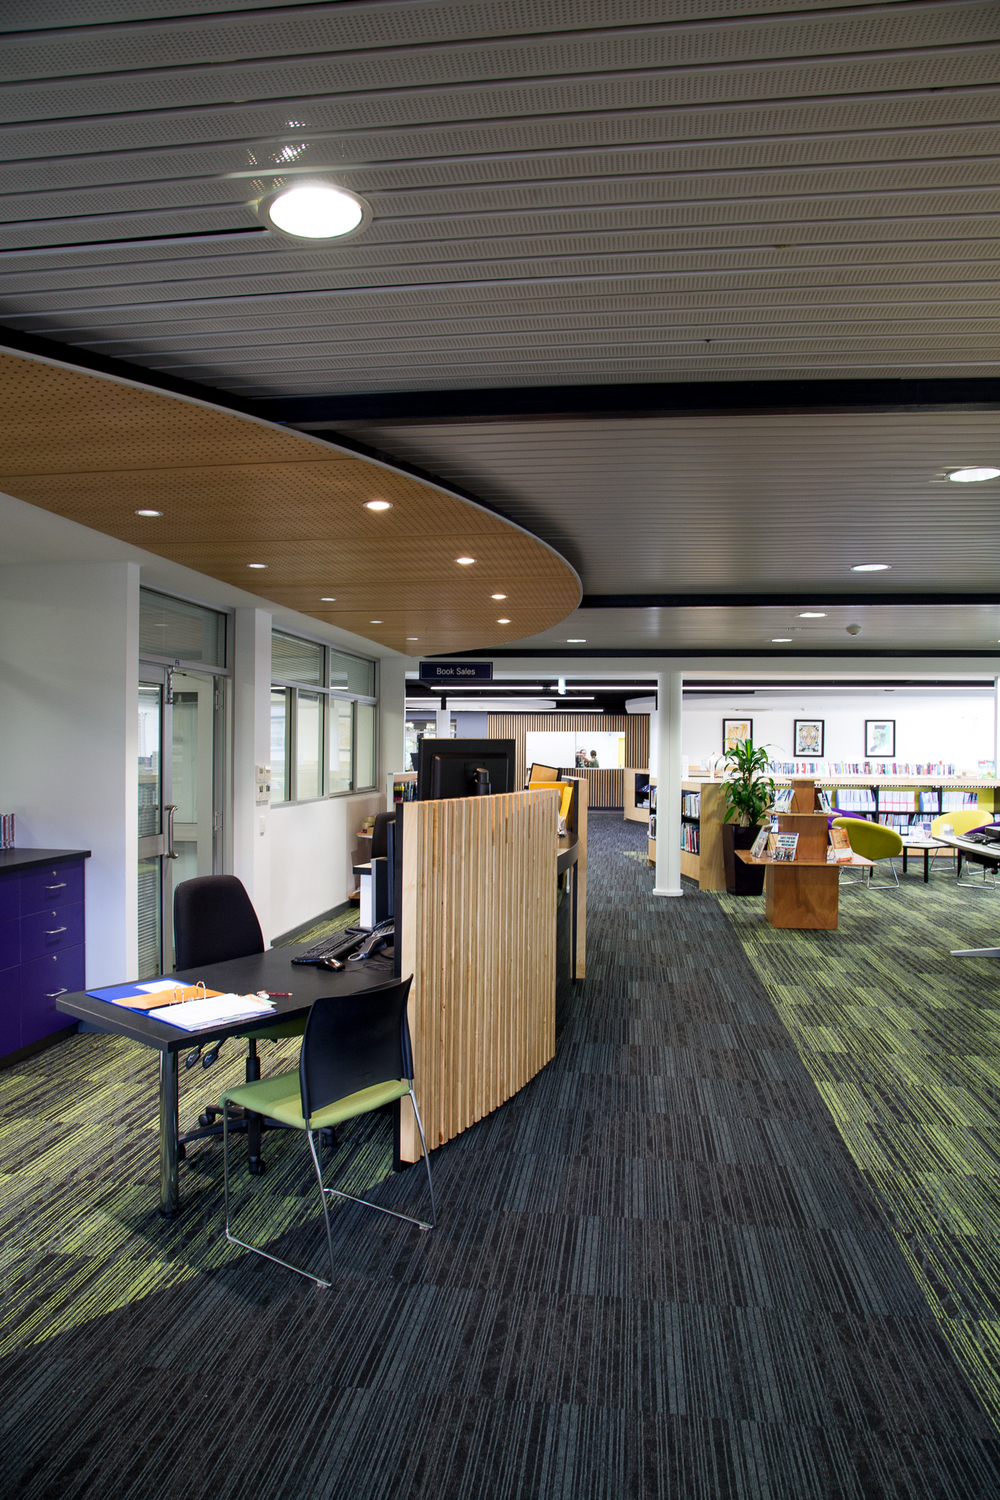 Northern Beaches TAFE campus - LED Lighting in common area